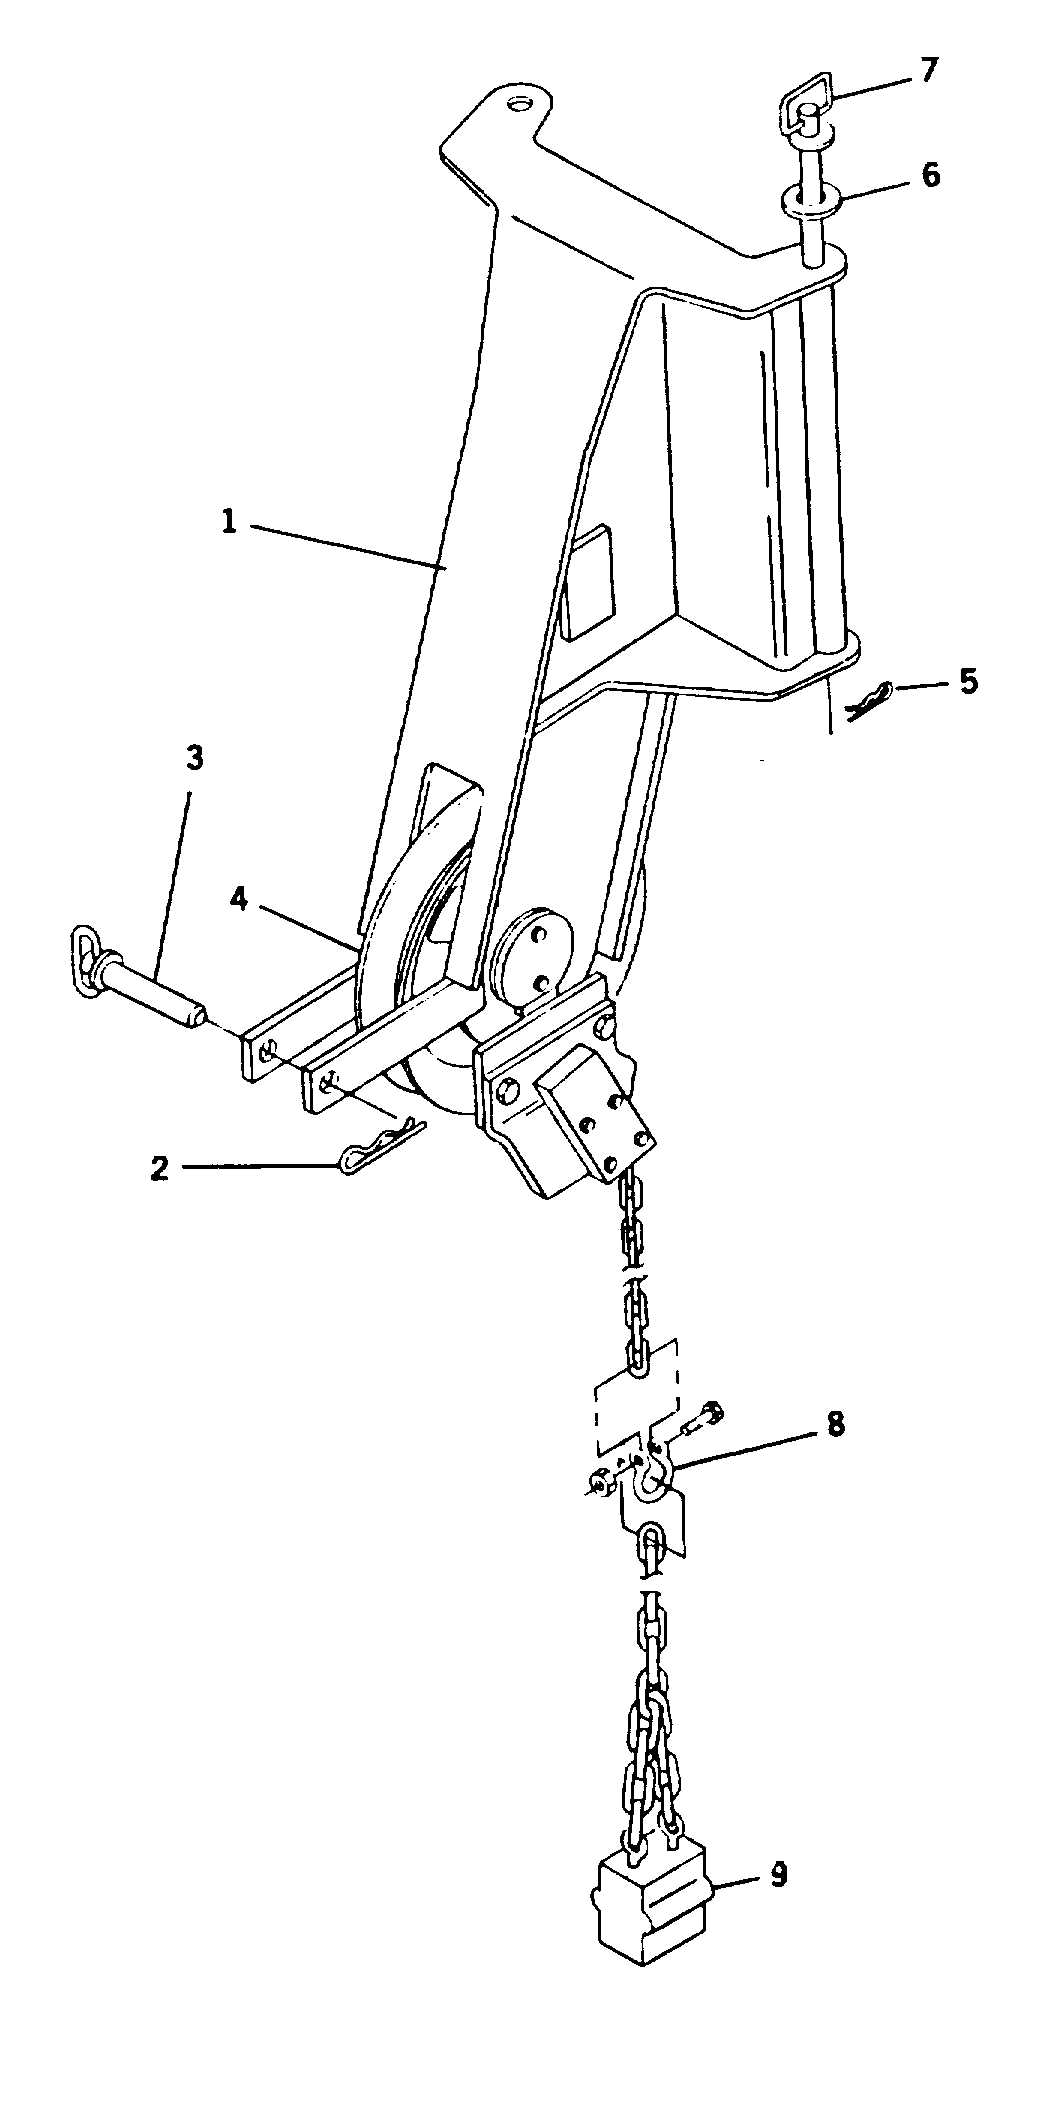 Section I. BOOM ASSEMBLY MAINTENANCE